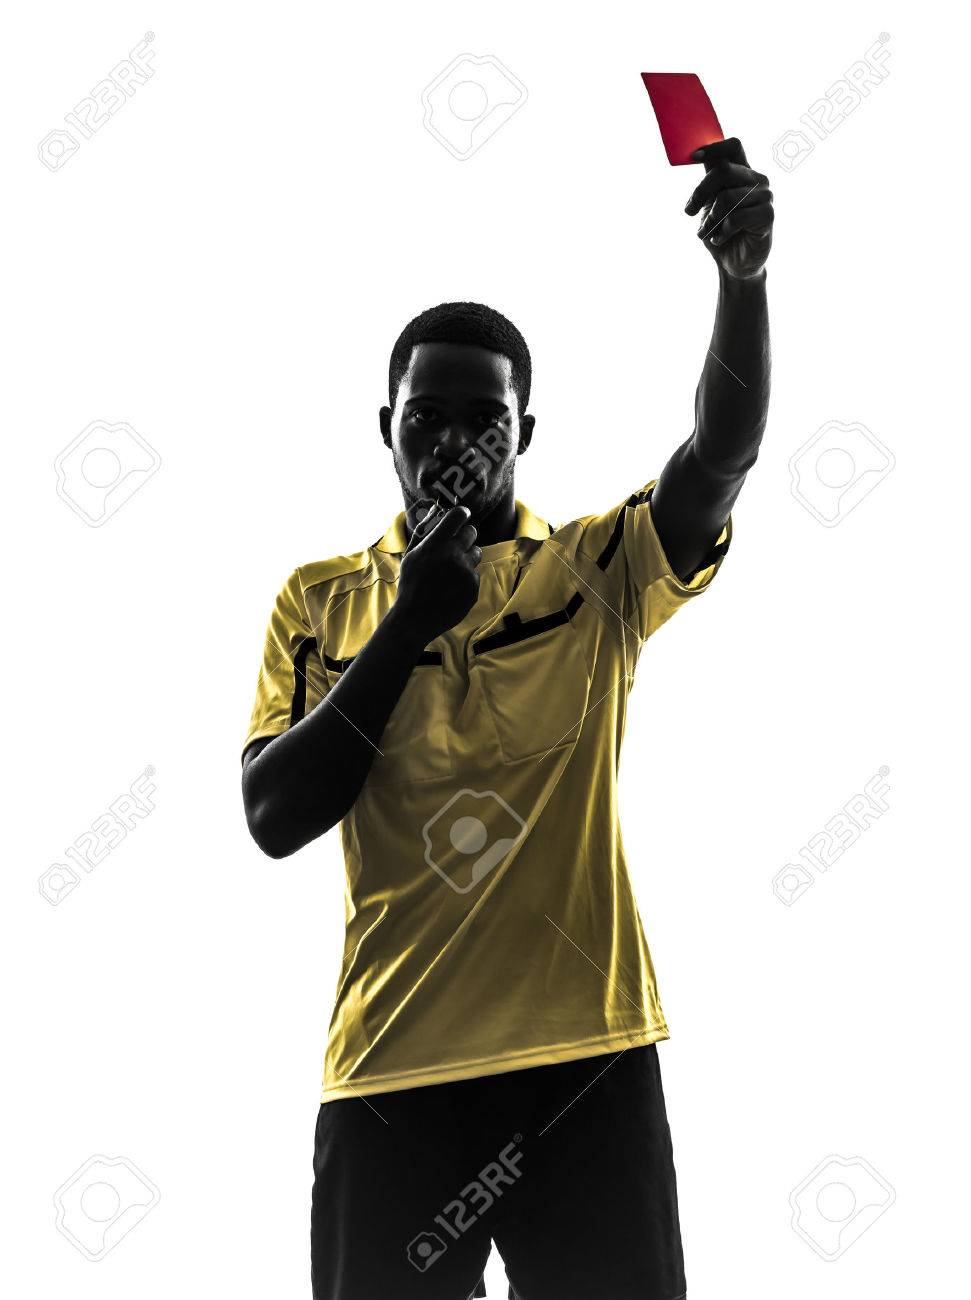 one african man referee showing red card in silhouette on white background - 23376611